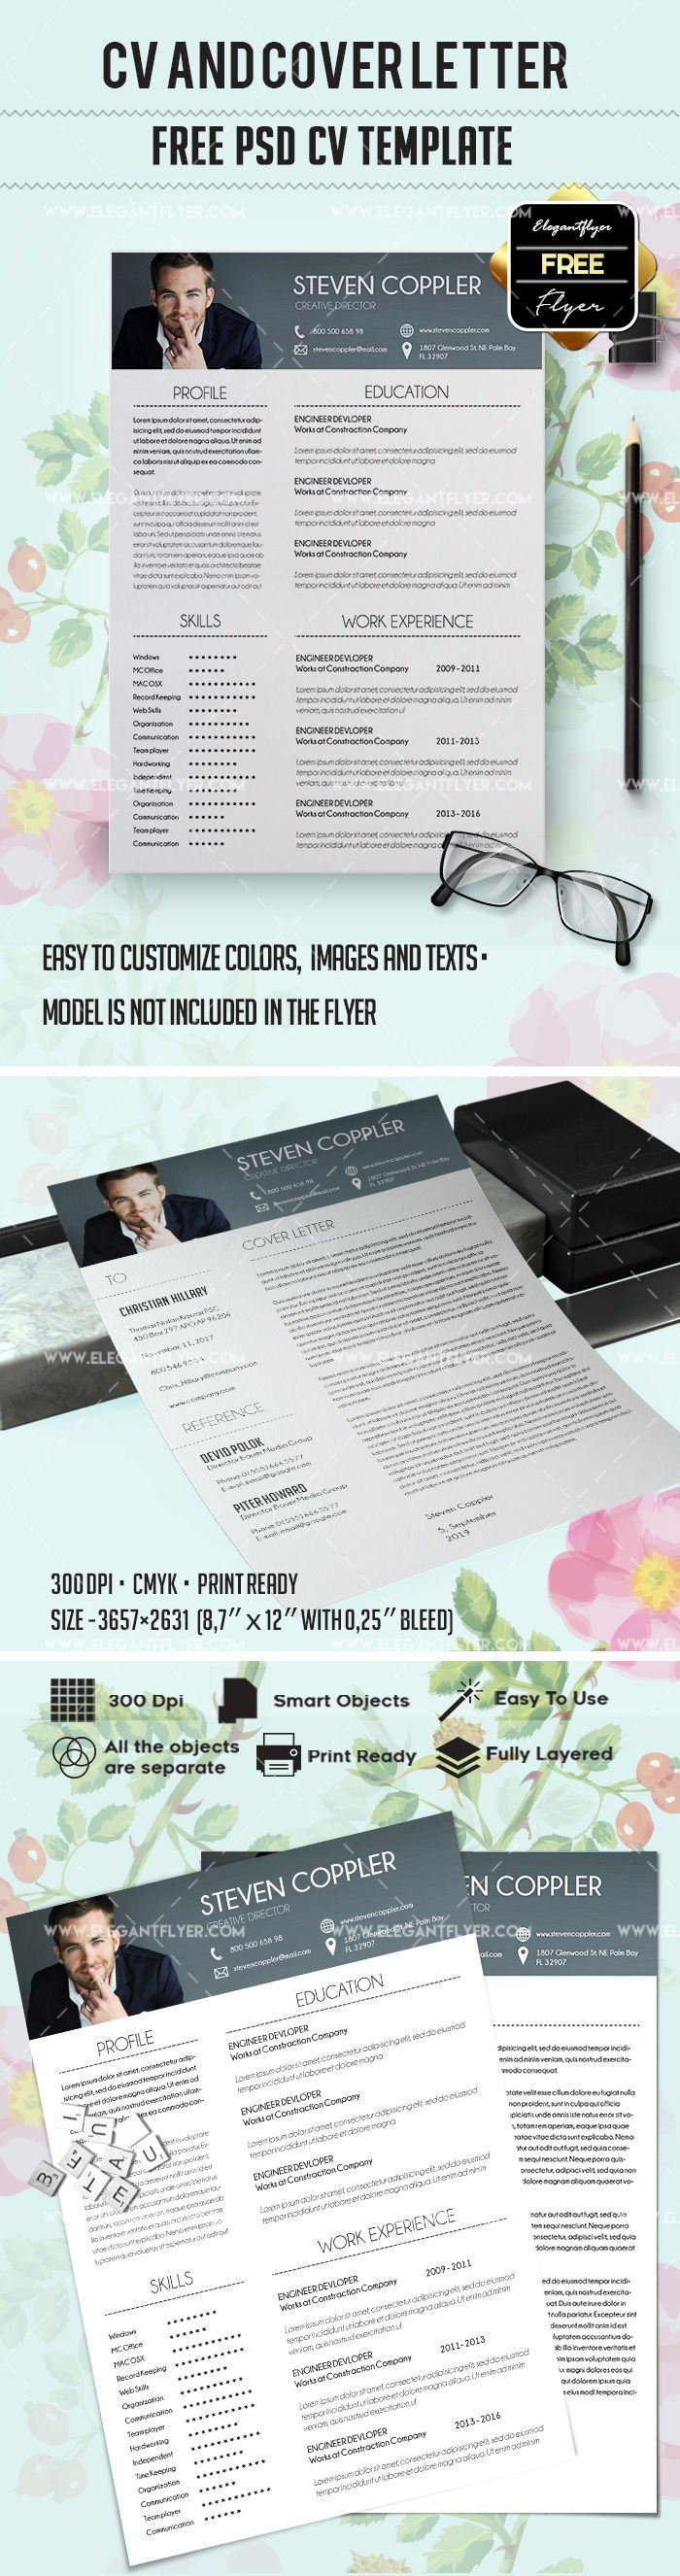 https://www.elegantflyer.com/free-resume-templates/free-cv-and-cover-letter-psd-template-2/